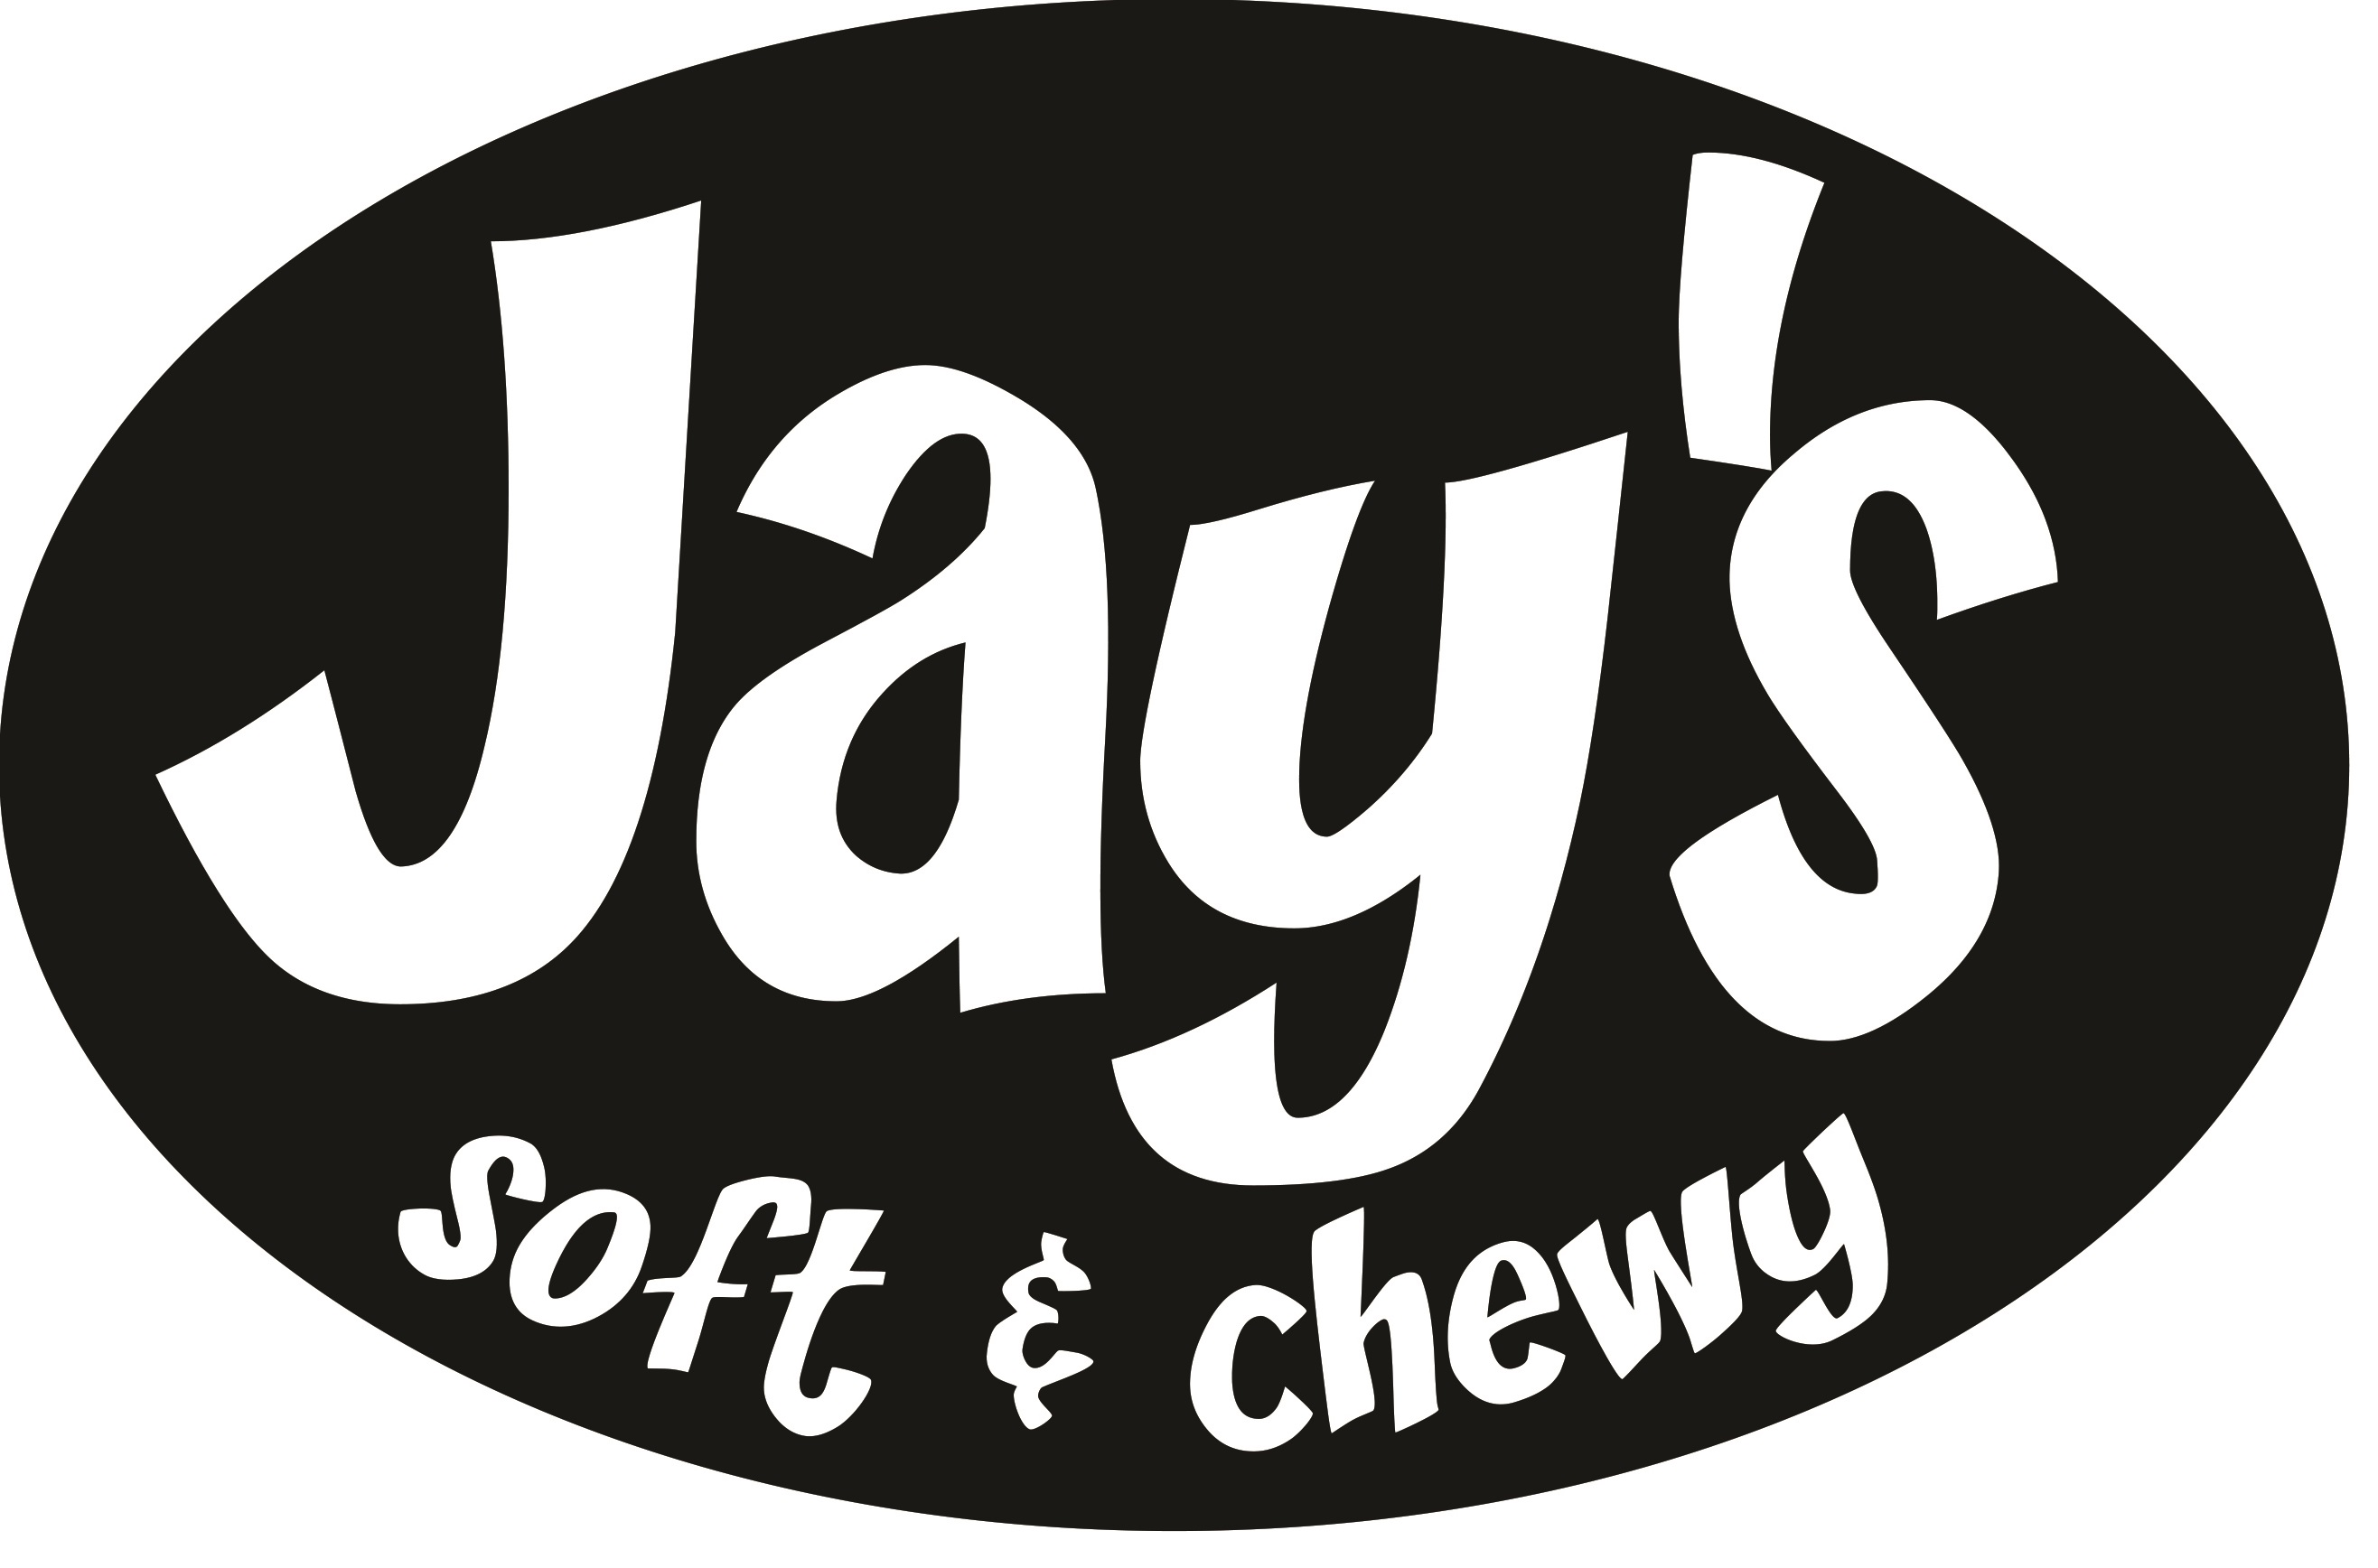 Waggers - Jay's Soft and Chewy